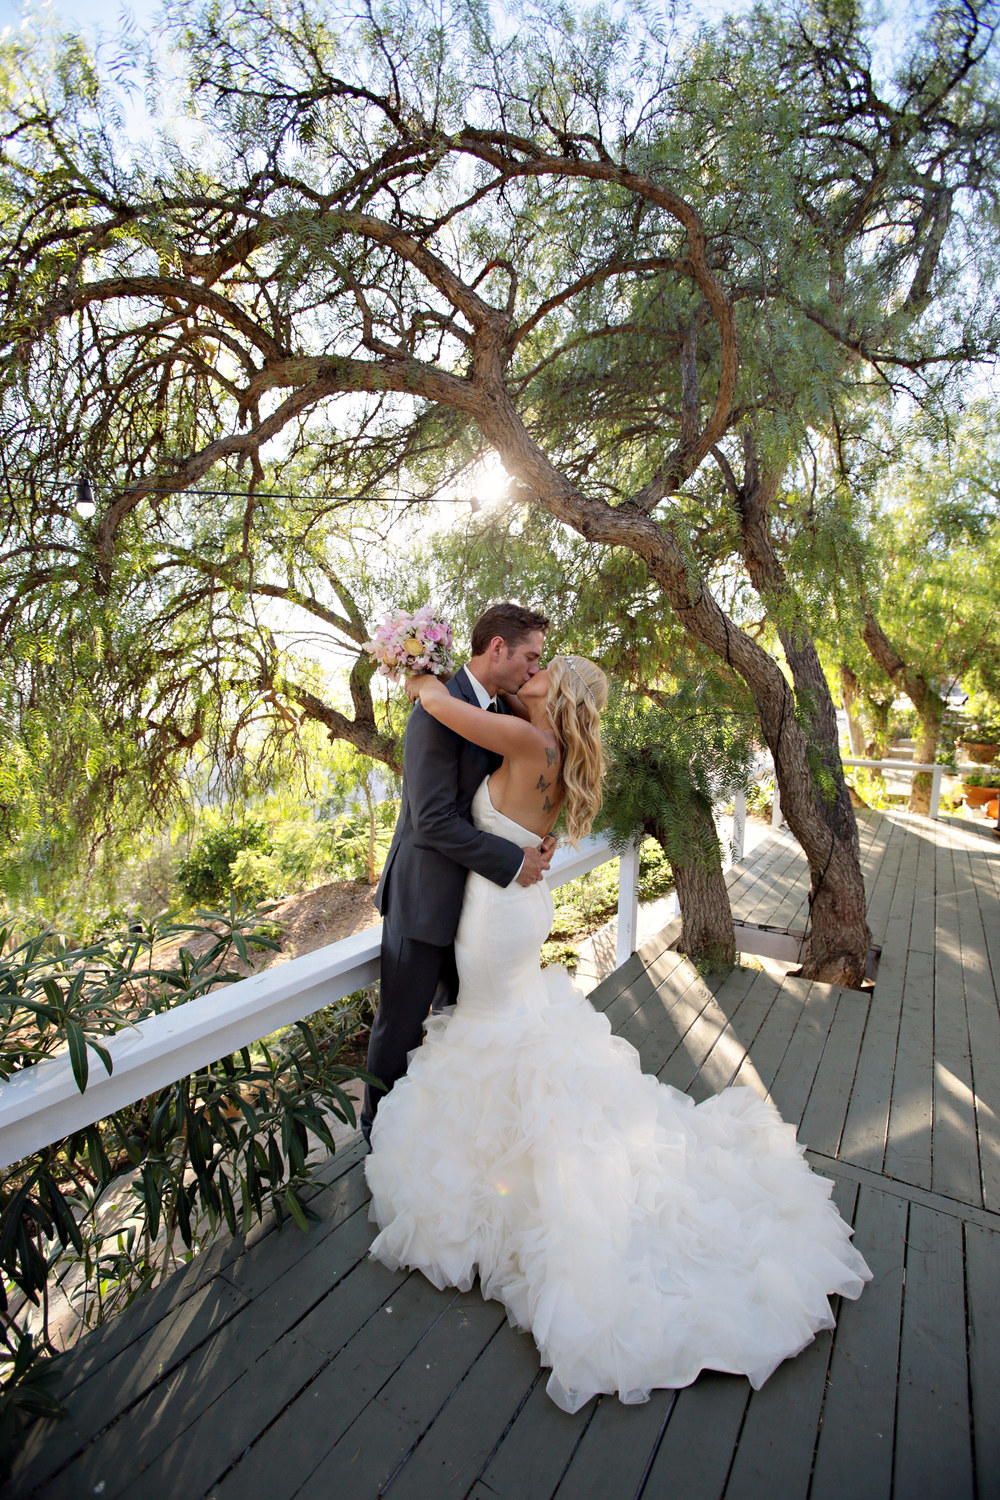 Travis & Lisa share a kiss at Rancho del Cielo, Malibu, CA